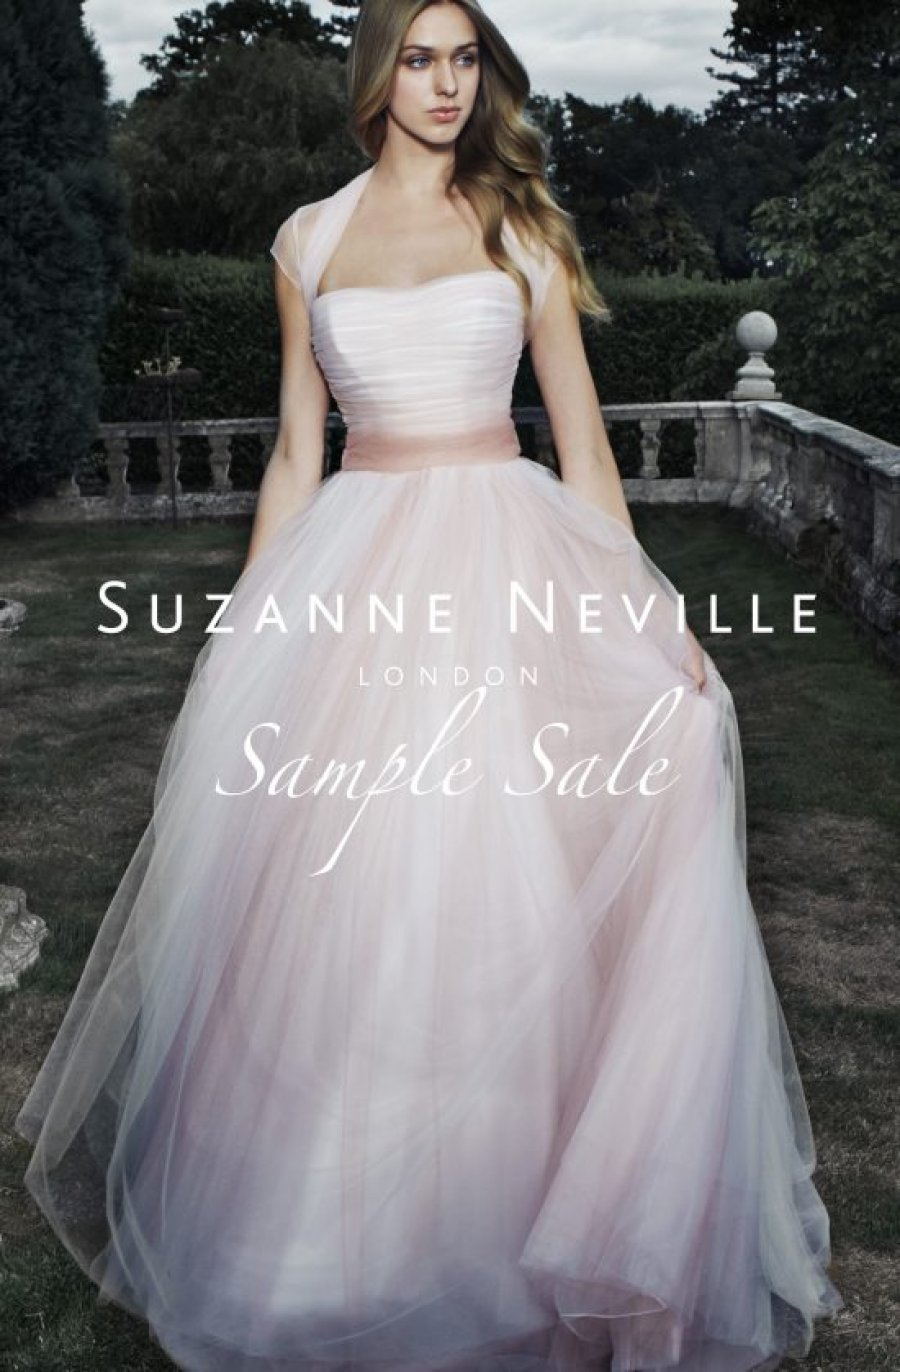 Suzanne Neville Sample Sale Room Cheshire -- Outlet store